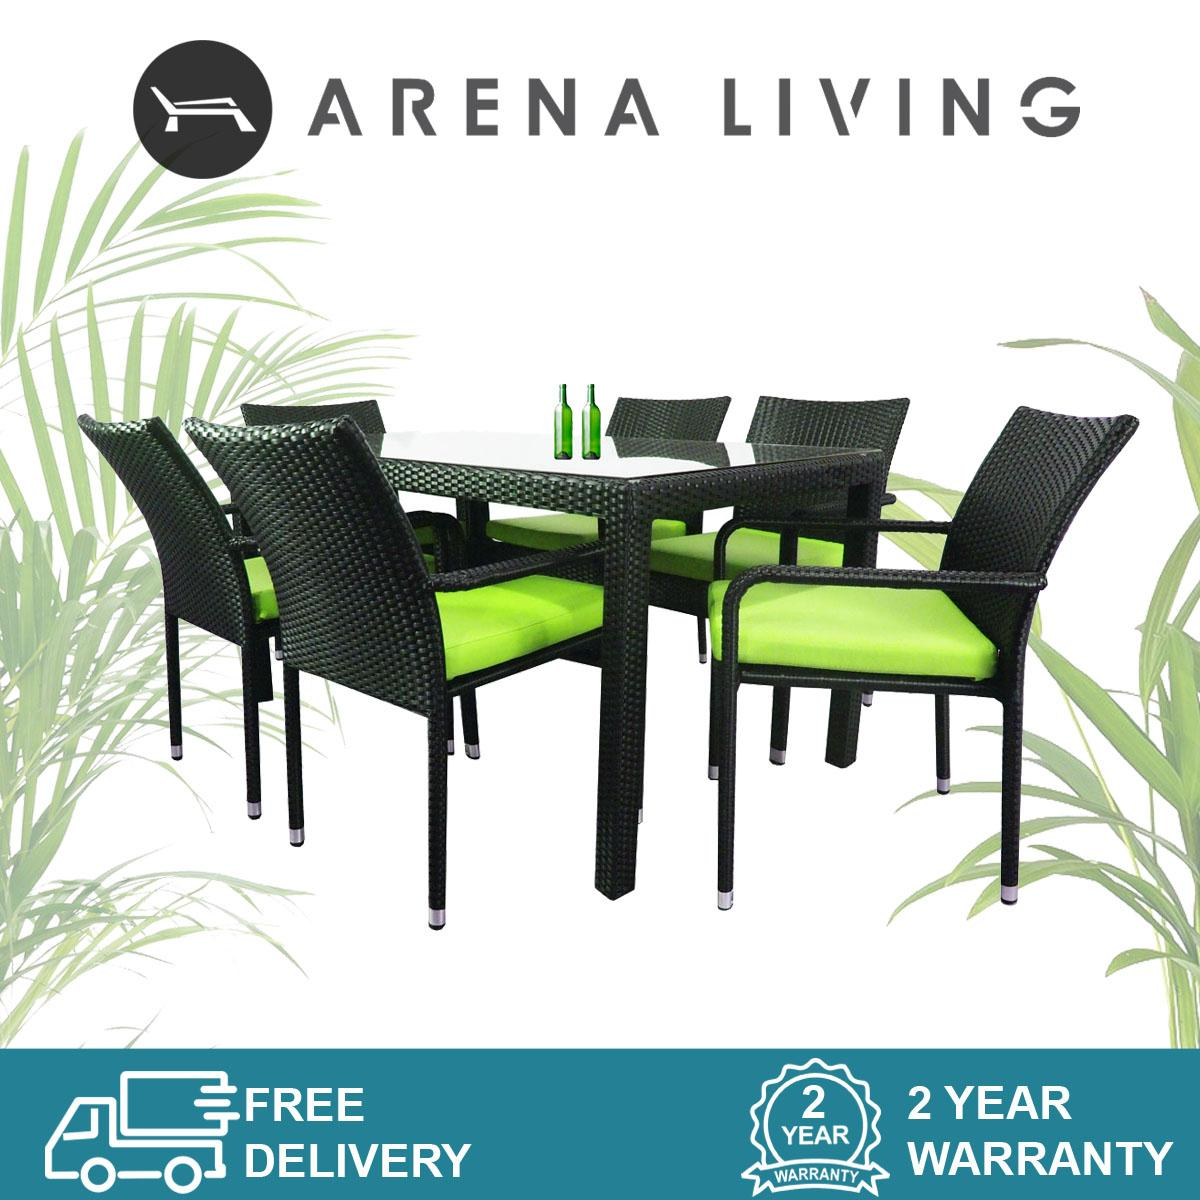 Boulevard 6 Chair Dining Set Green Cushion, Outdoor Furniture by Arena Living™